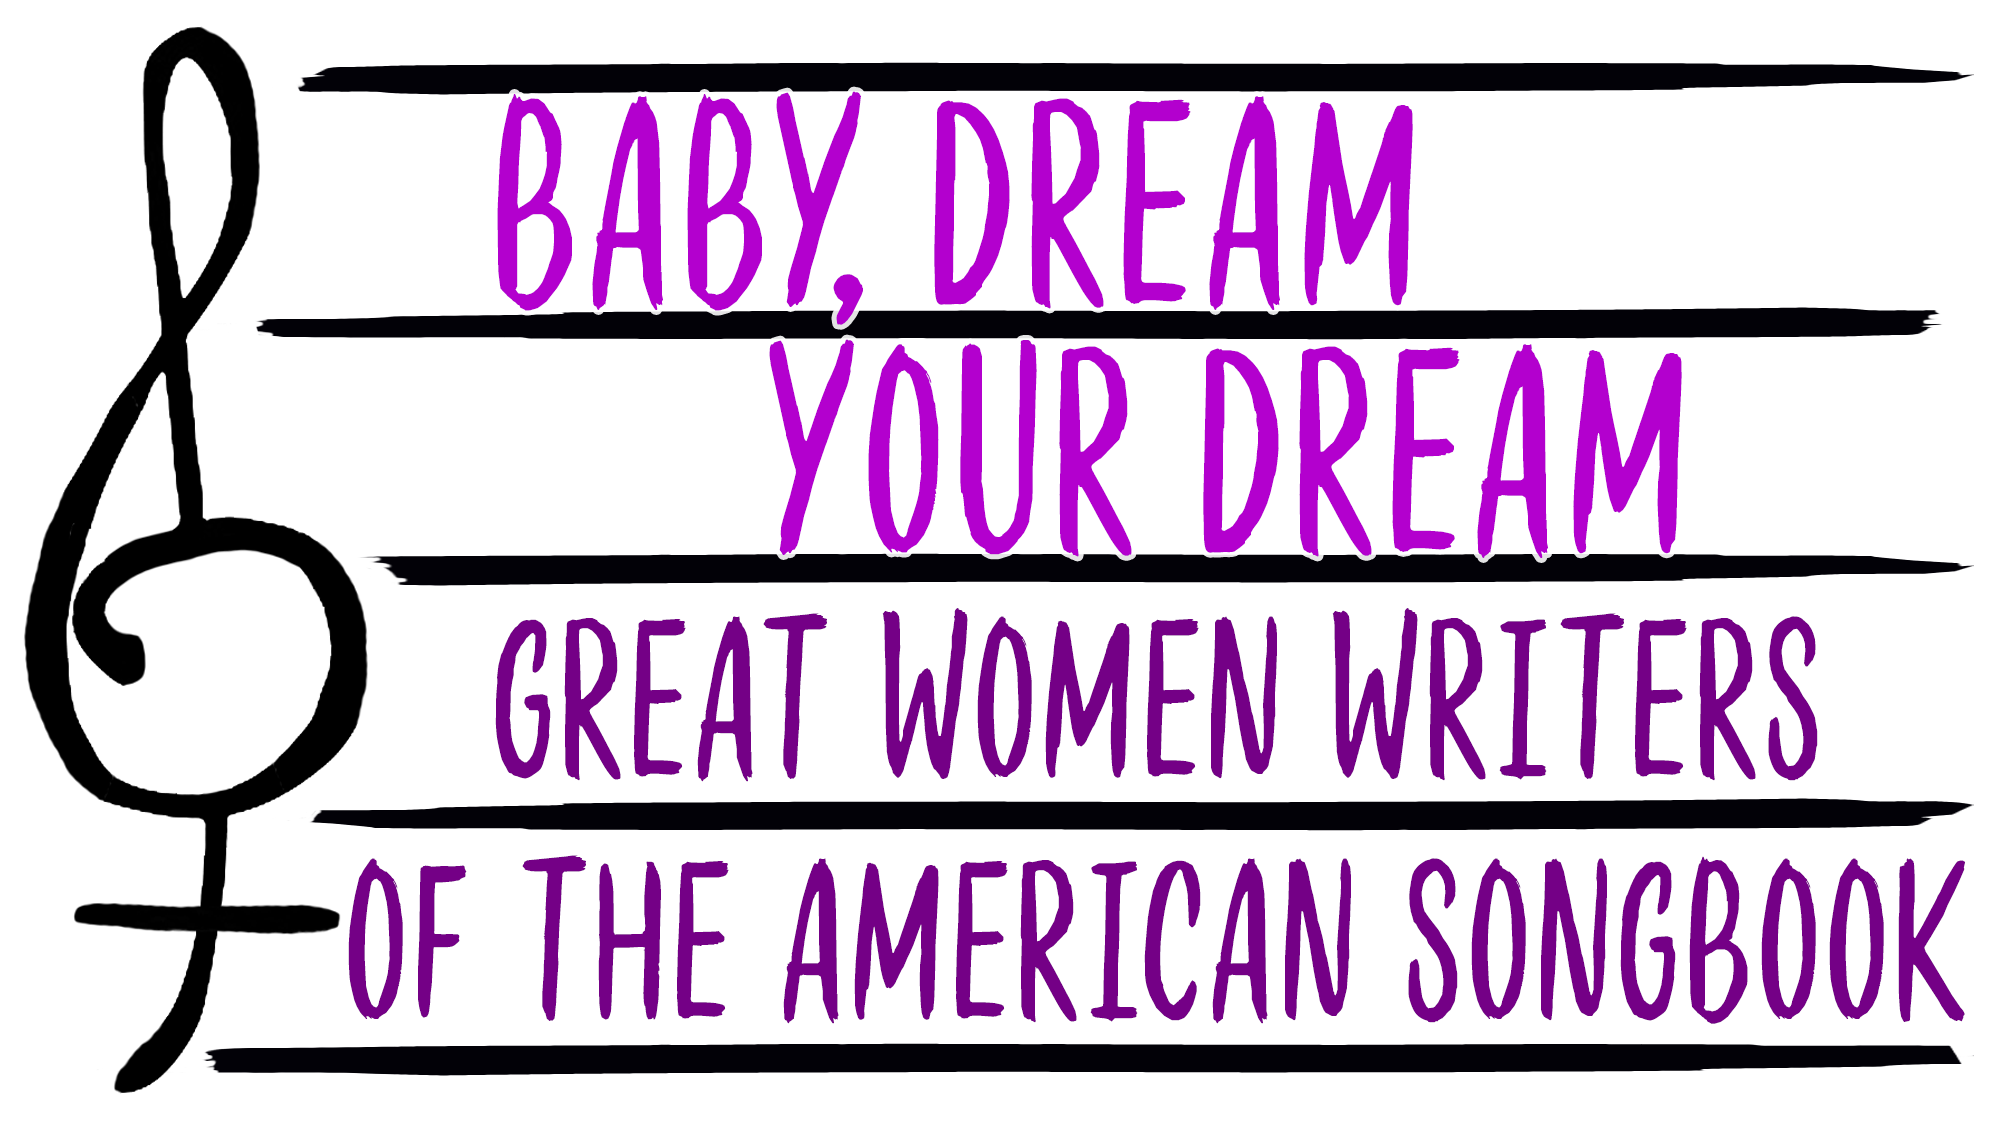 Baby, Dream Your Dream: Great Women Writers of the American Songbook